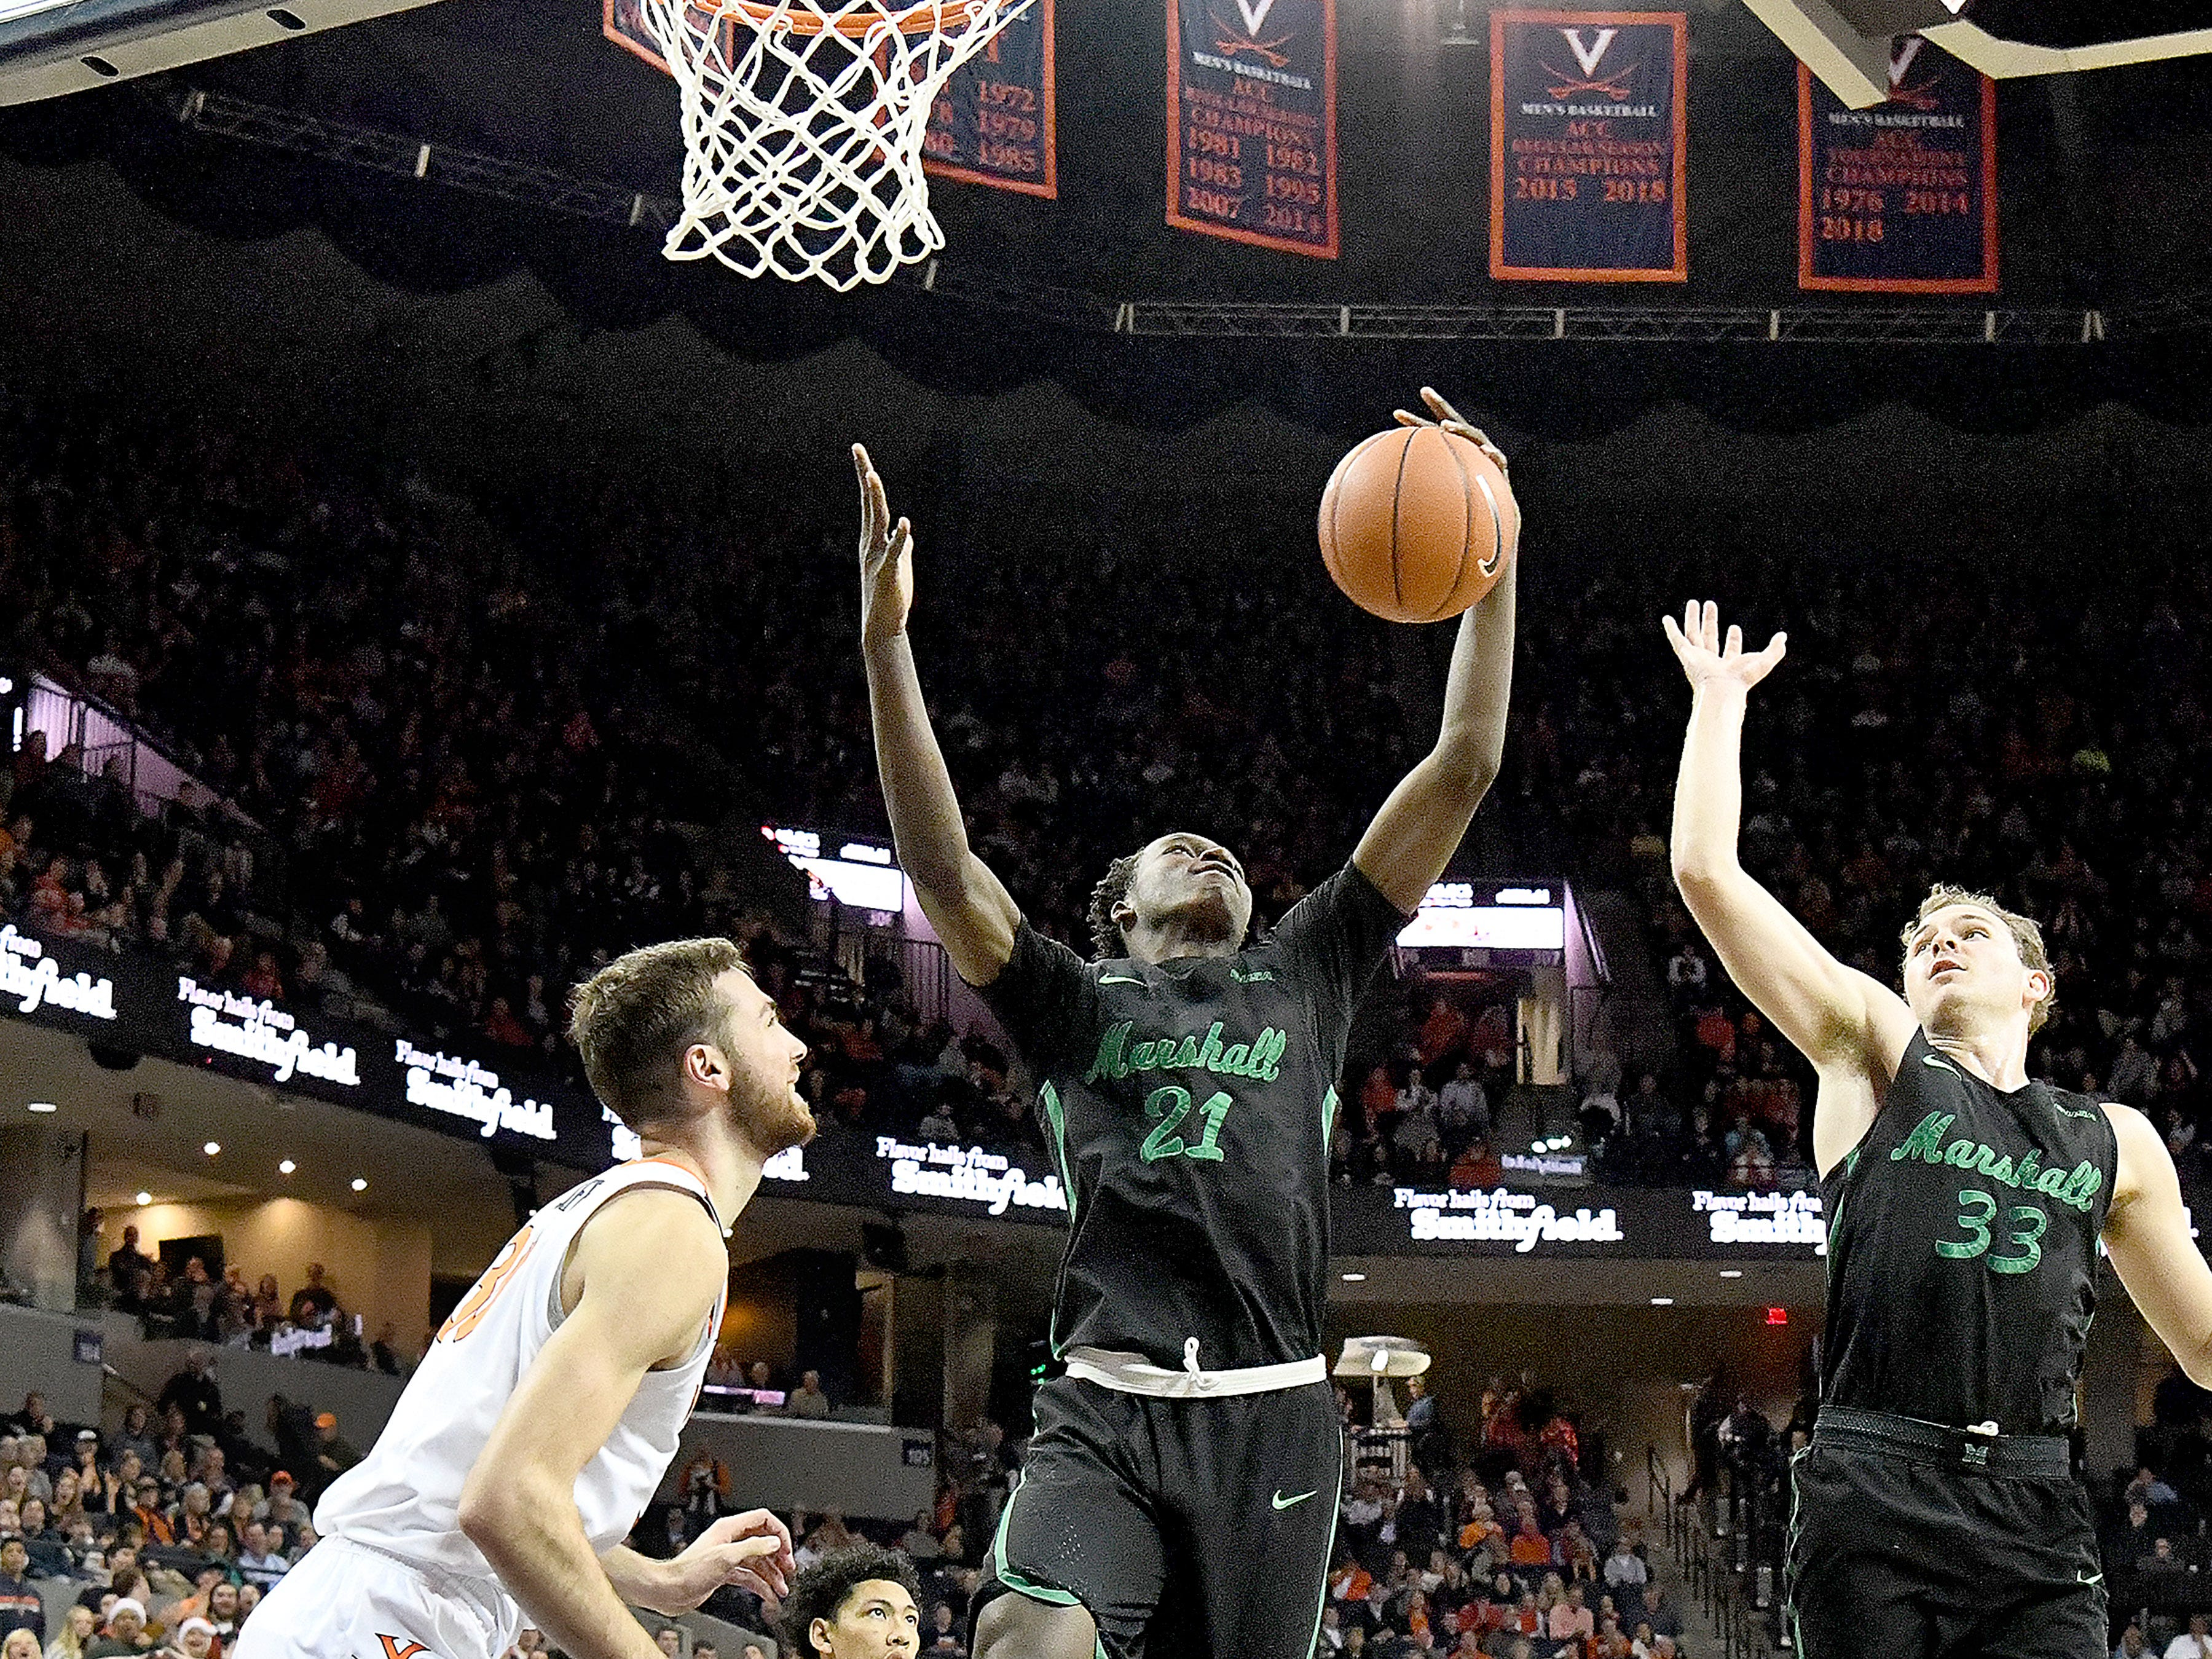 Marshall's Darius George, former R.E. Lee star, comes in under the basket to take control of the rebound during their game against University of Virginia, played at the John Paul Jones Arena on Dec. 31, 2016.